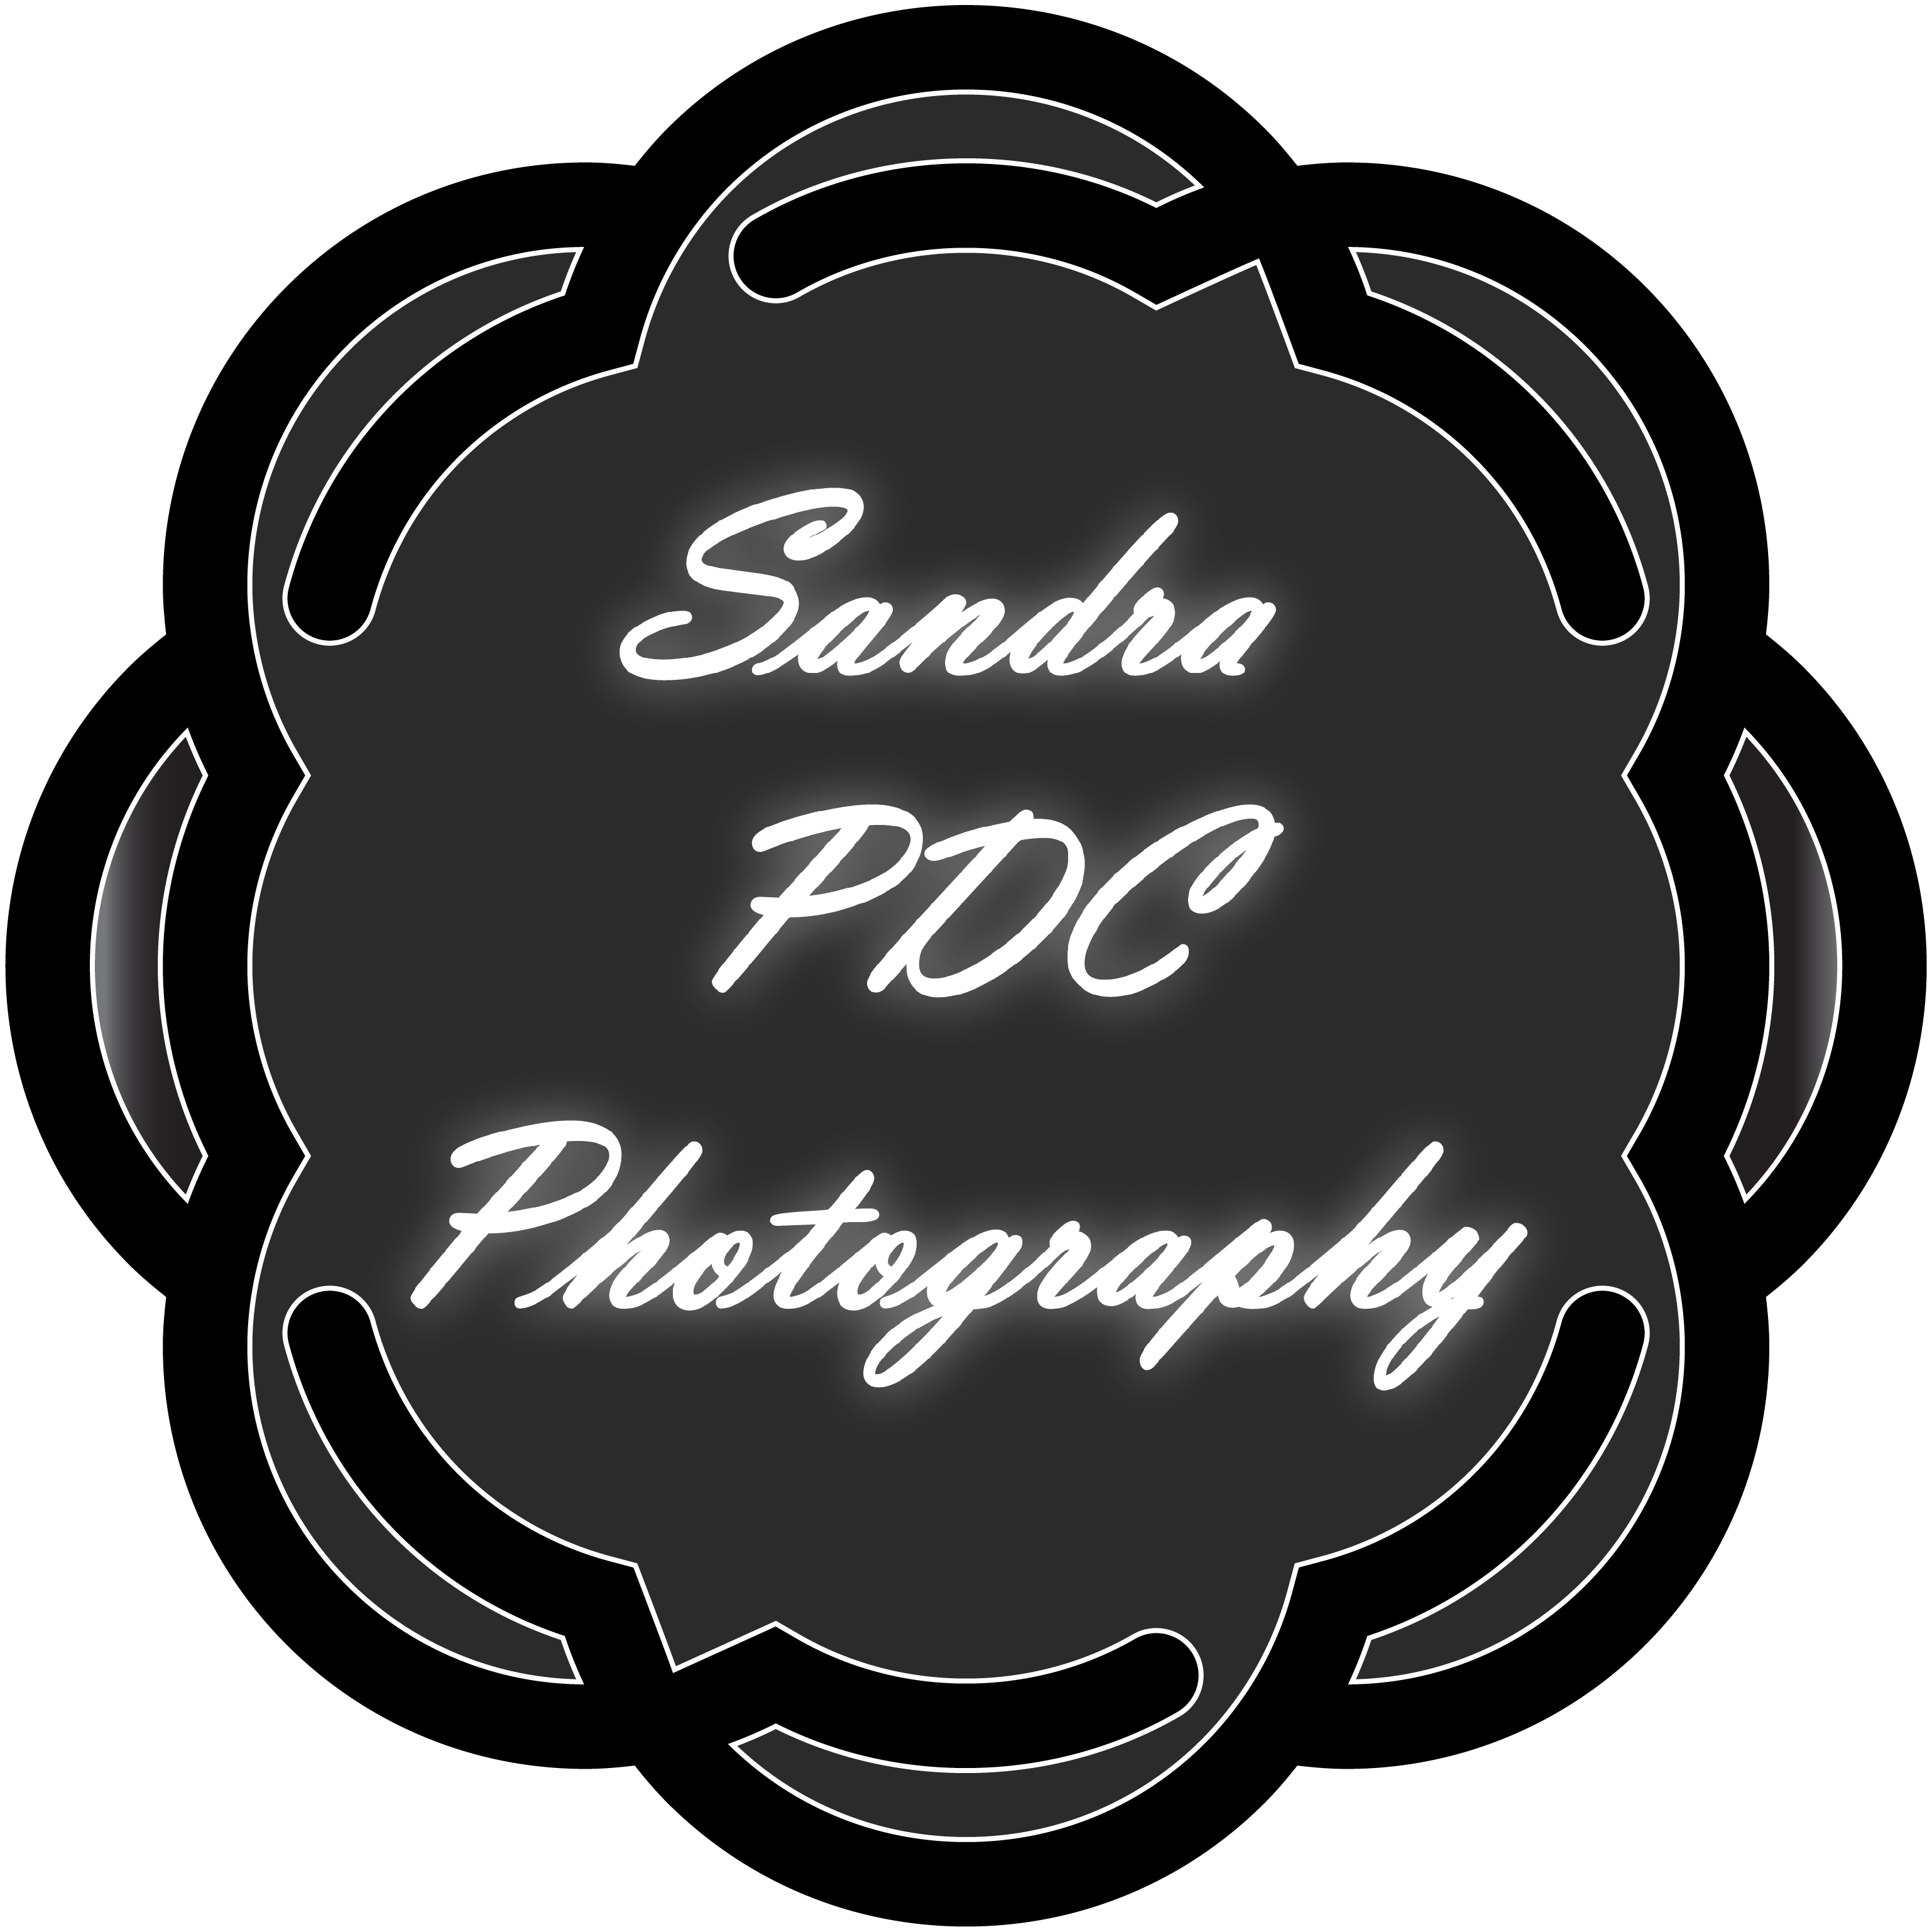 Sandra PDC Photography, a Professional Portrait Photographer in Austin, TX Launches New Website